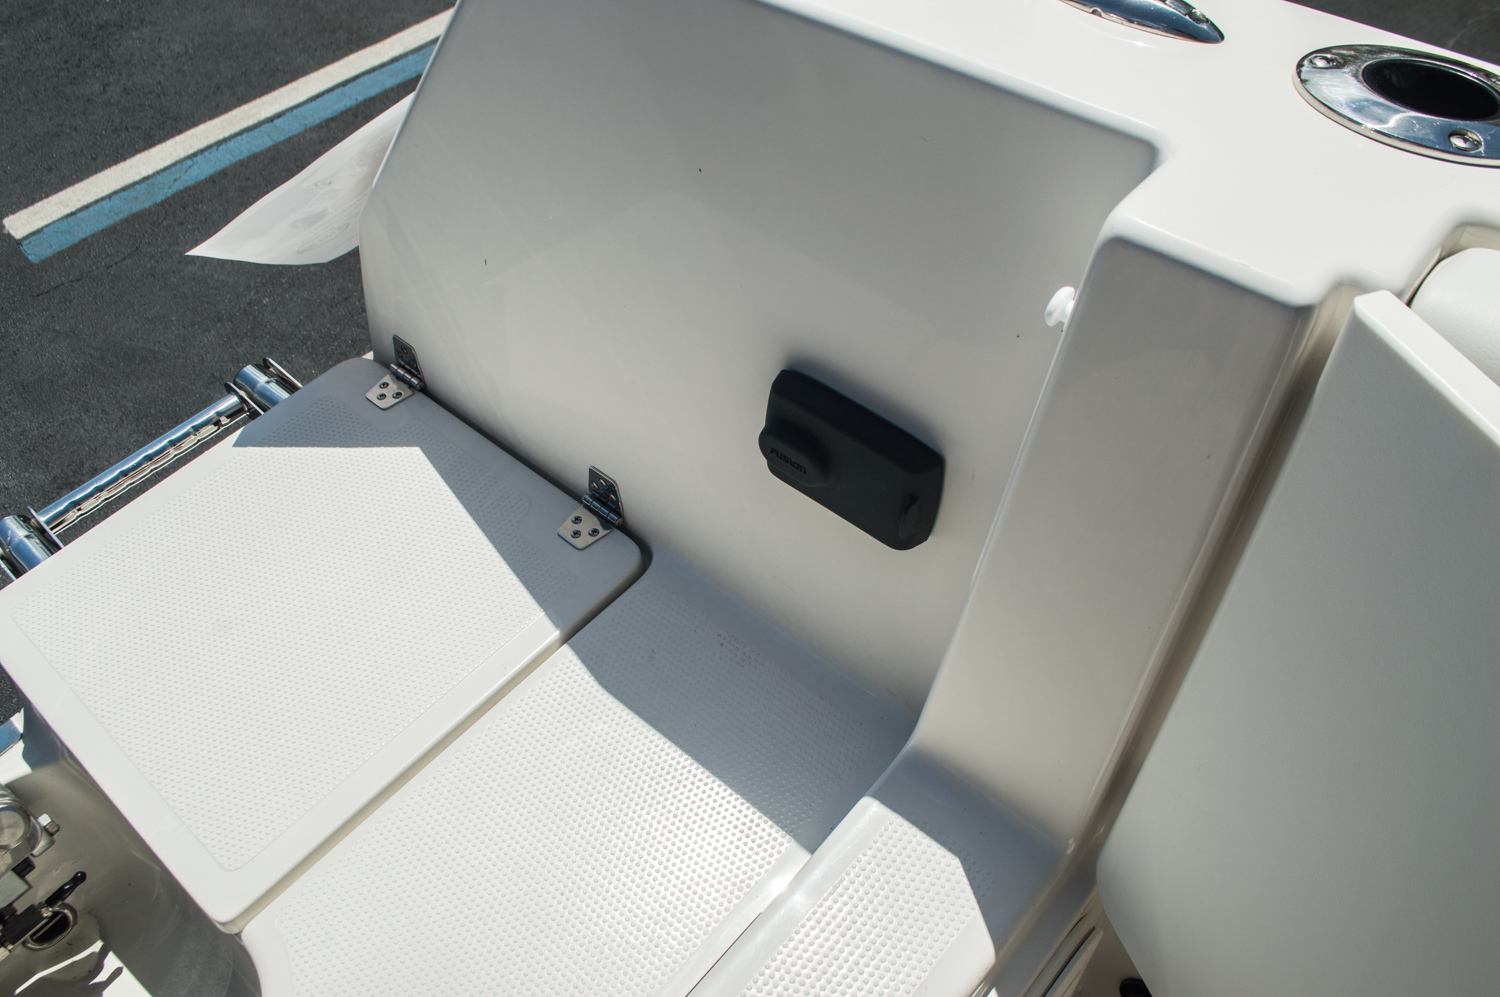 Thumbnail 57 for New 2016 Sailfish 275 Dual Console boat for sale in West Palm Beach, FL